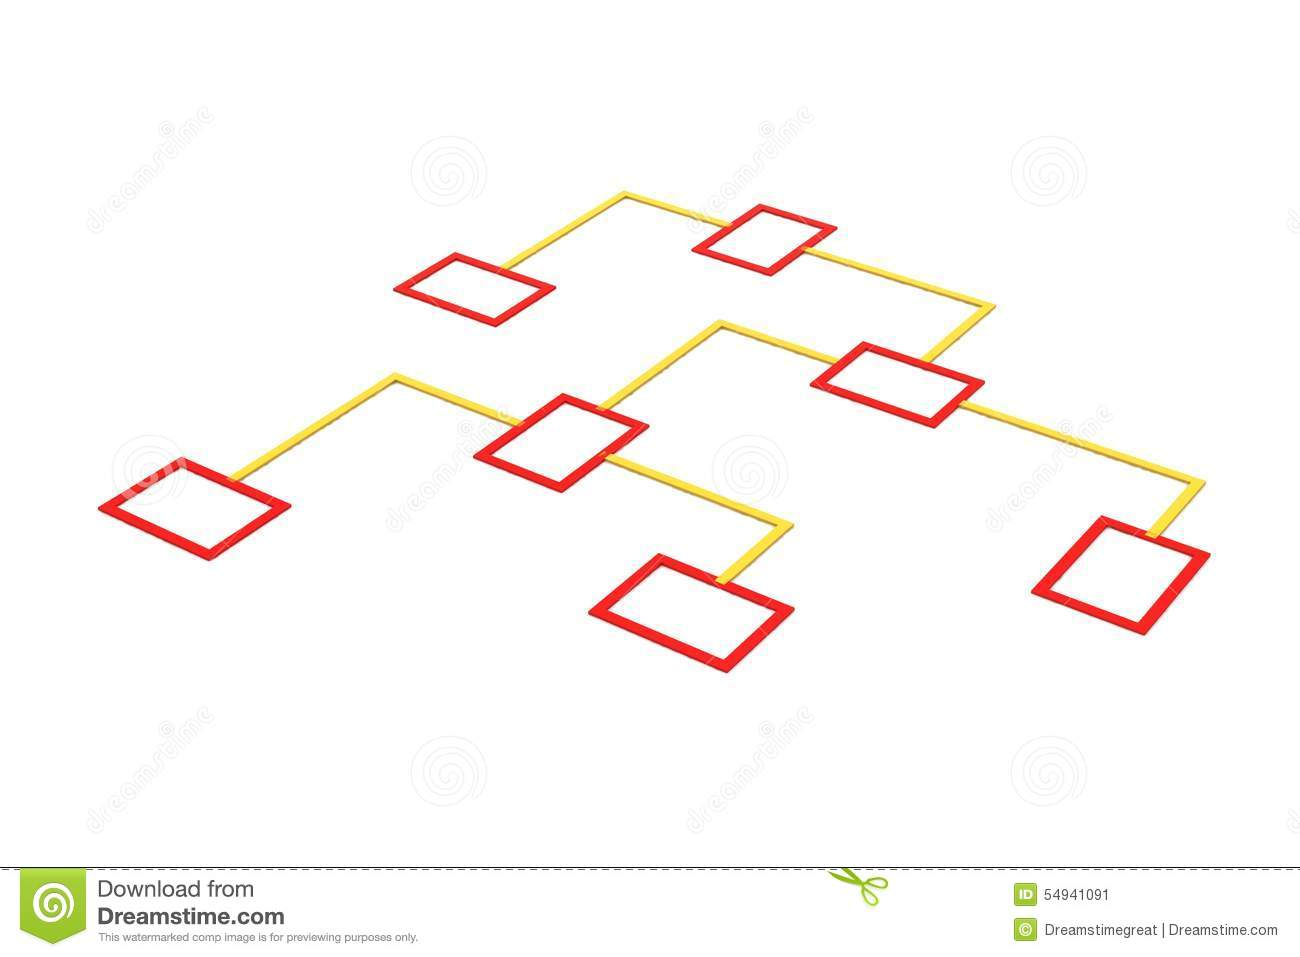 hight resolution of network connection diagram network cable connection diagram network cat6 connection wiring diagram fuse box illustration jeep